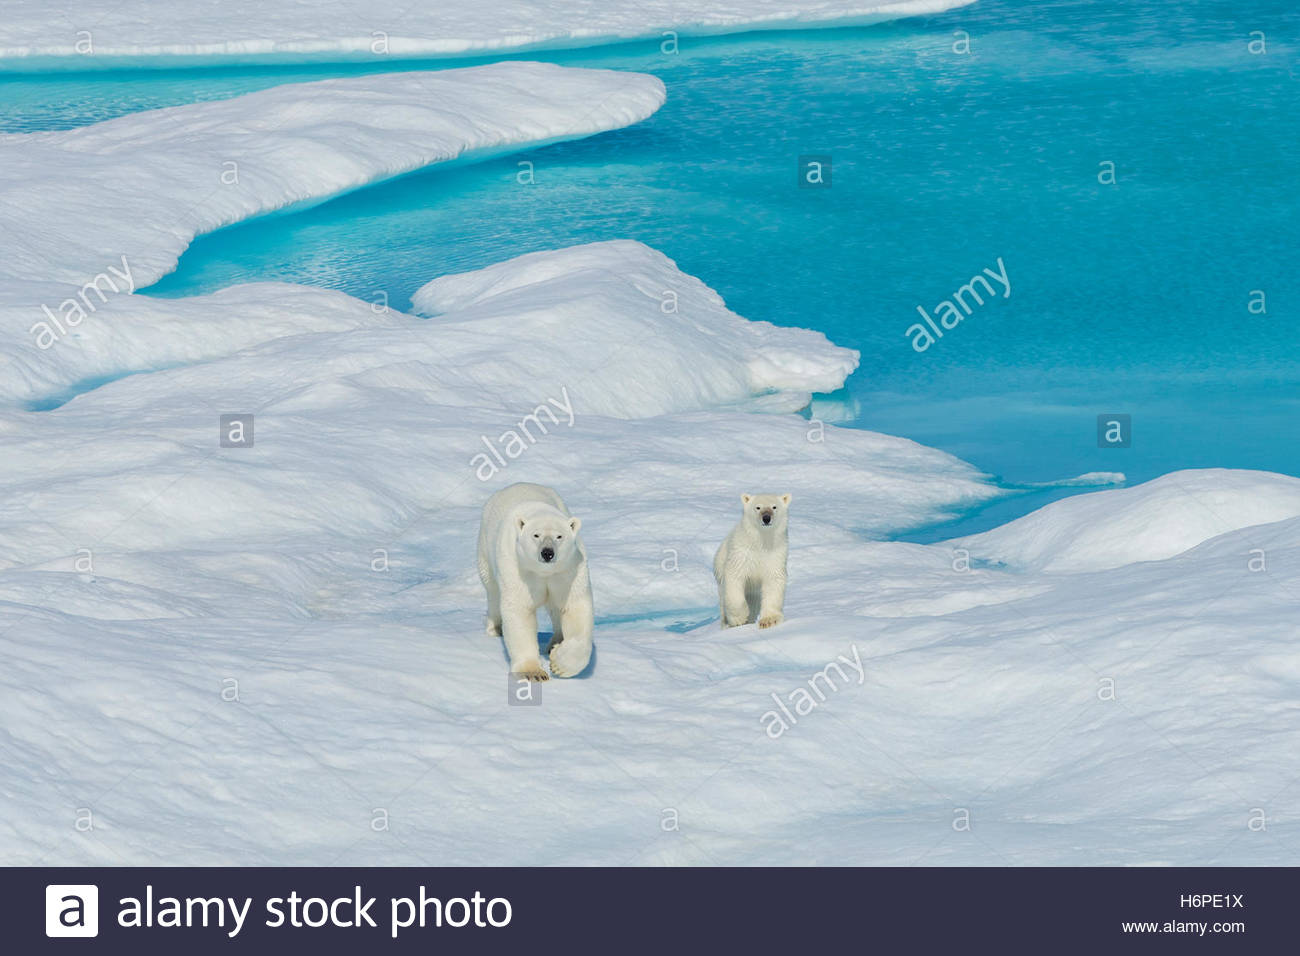 A polar bear (Ursus maritimus) and its cub wander the ice floes in the Canadian Arctic. - Stock Image